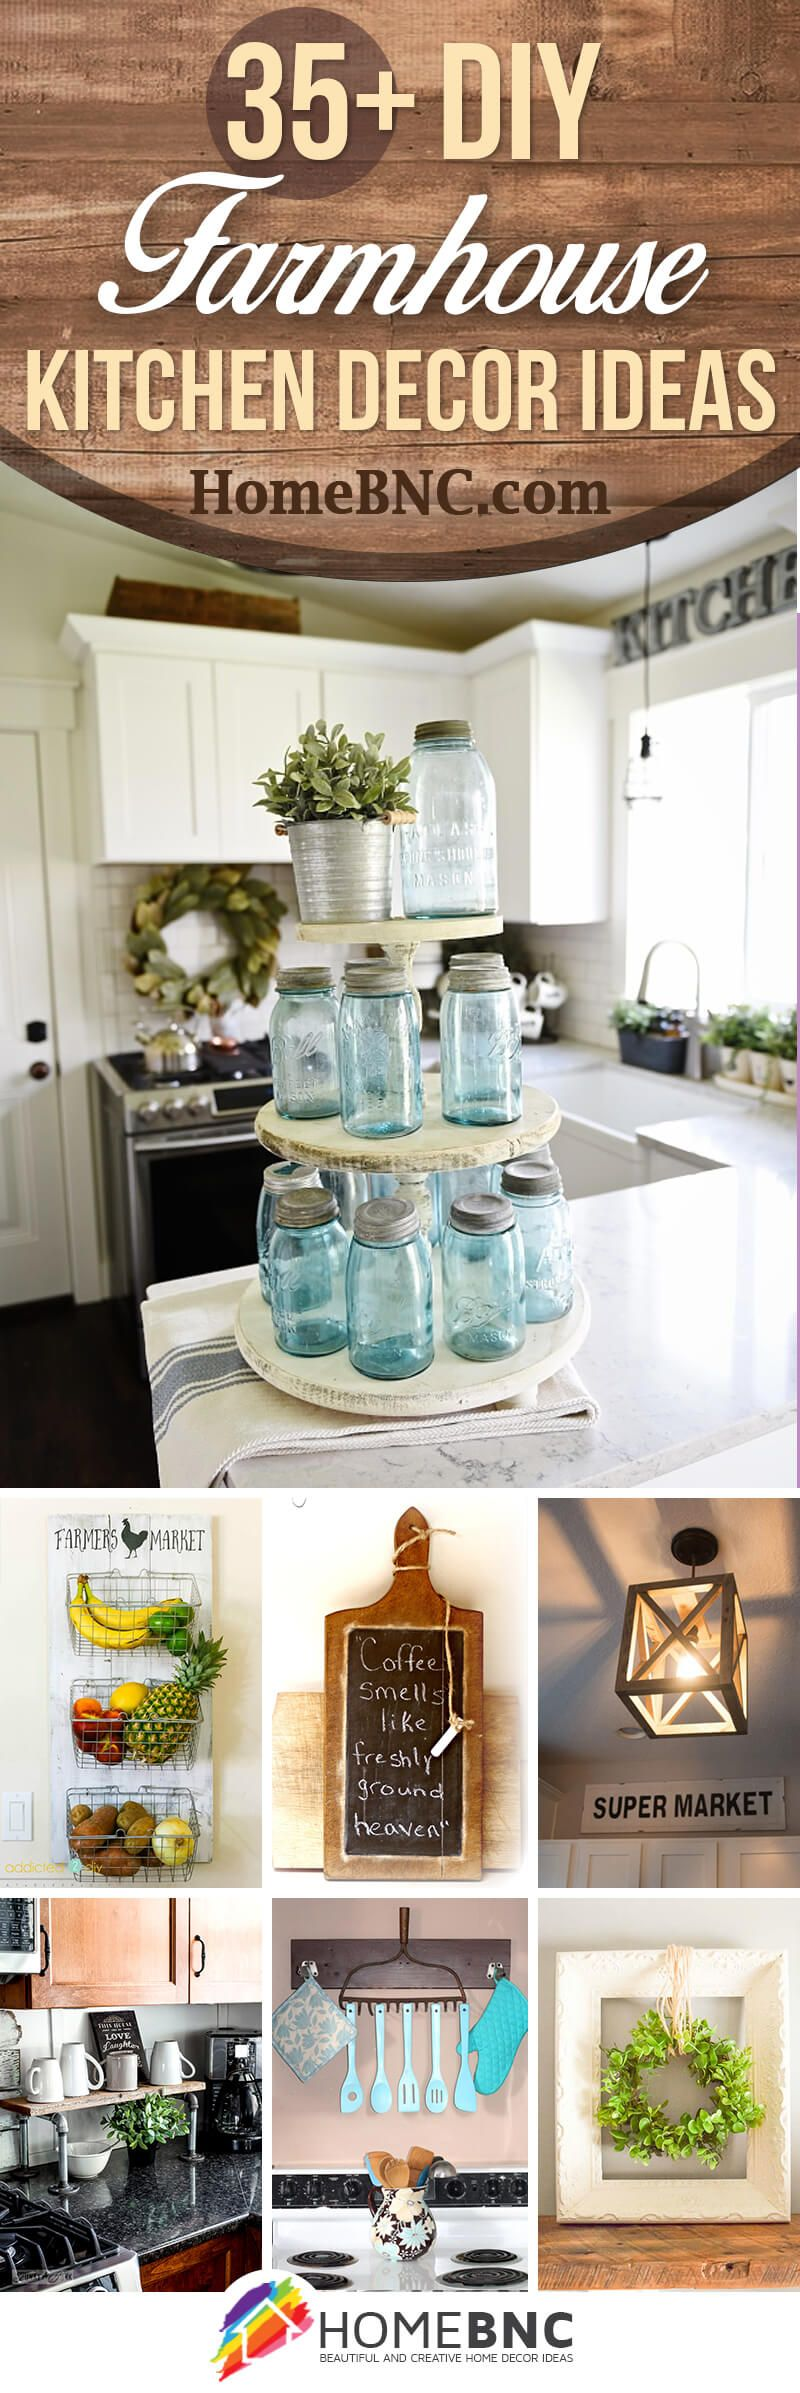 35 Diy Farmhouse Kitchen Decor Projects To Upgrade Your Kitchen On A Budget Farmhouse Kitchen Decor Diy Kitchen Decor Diy Farmhouse Decor